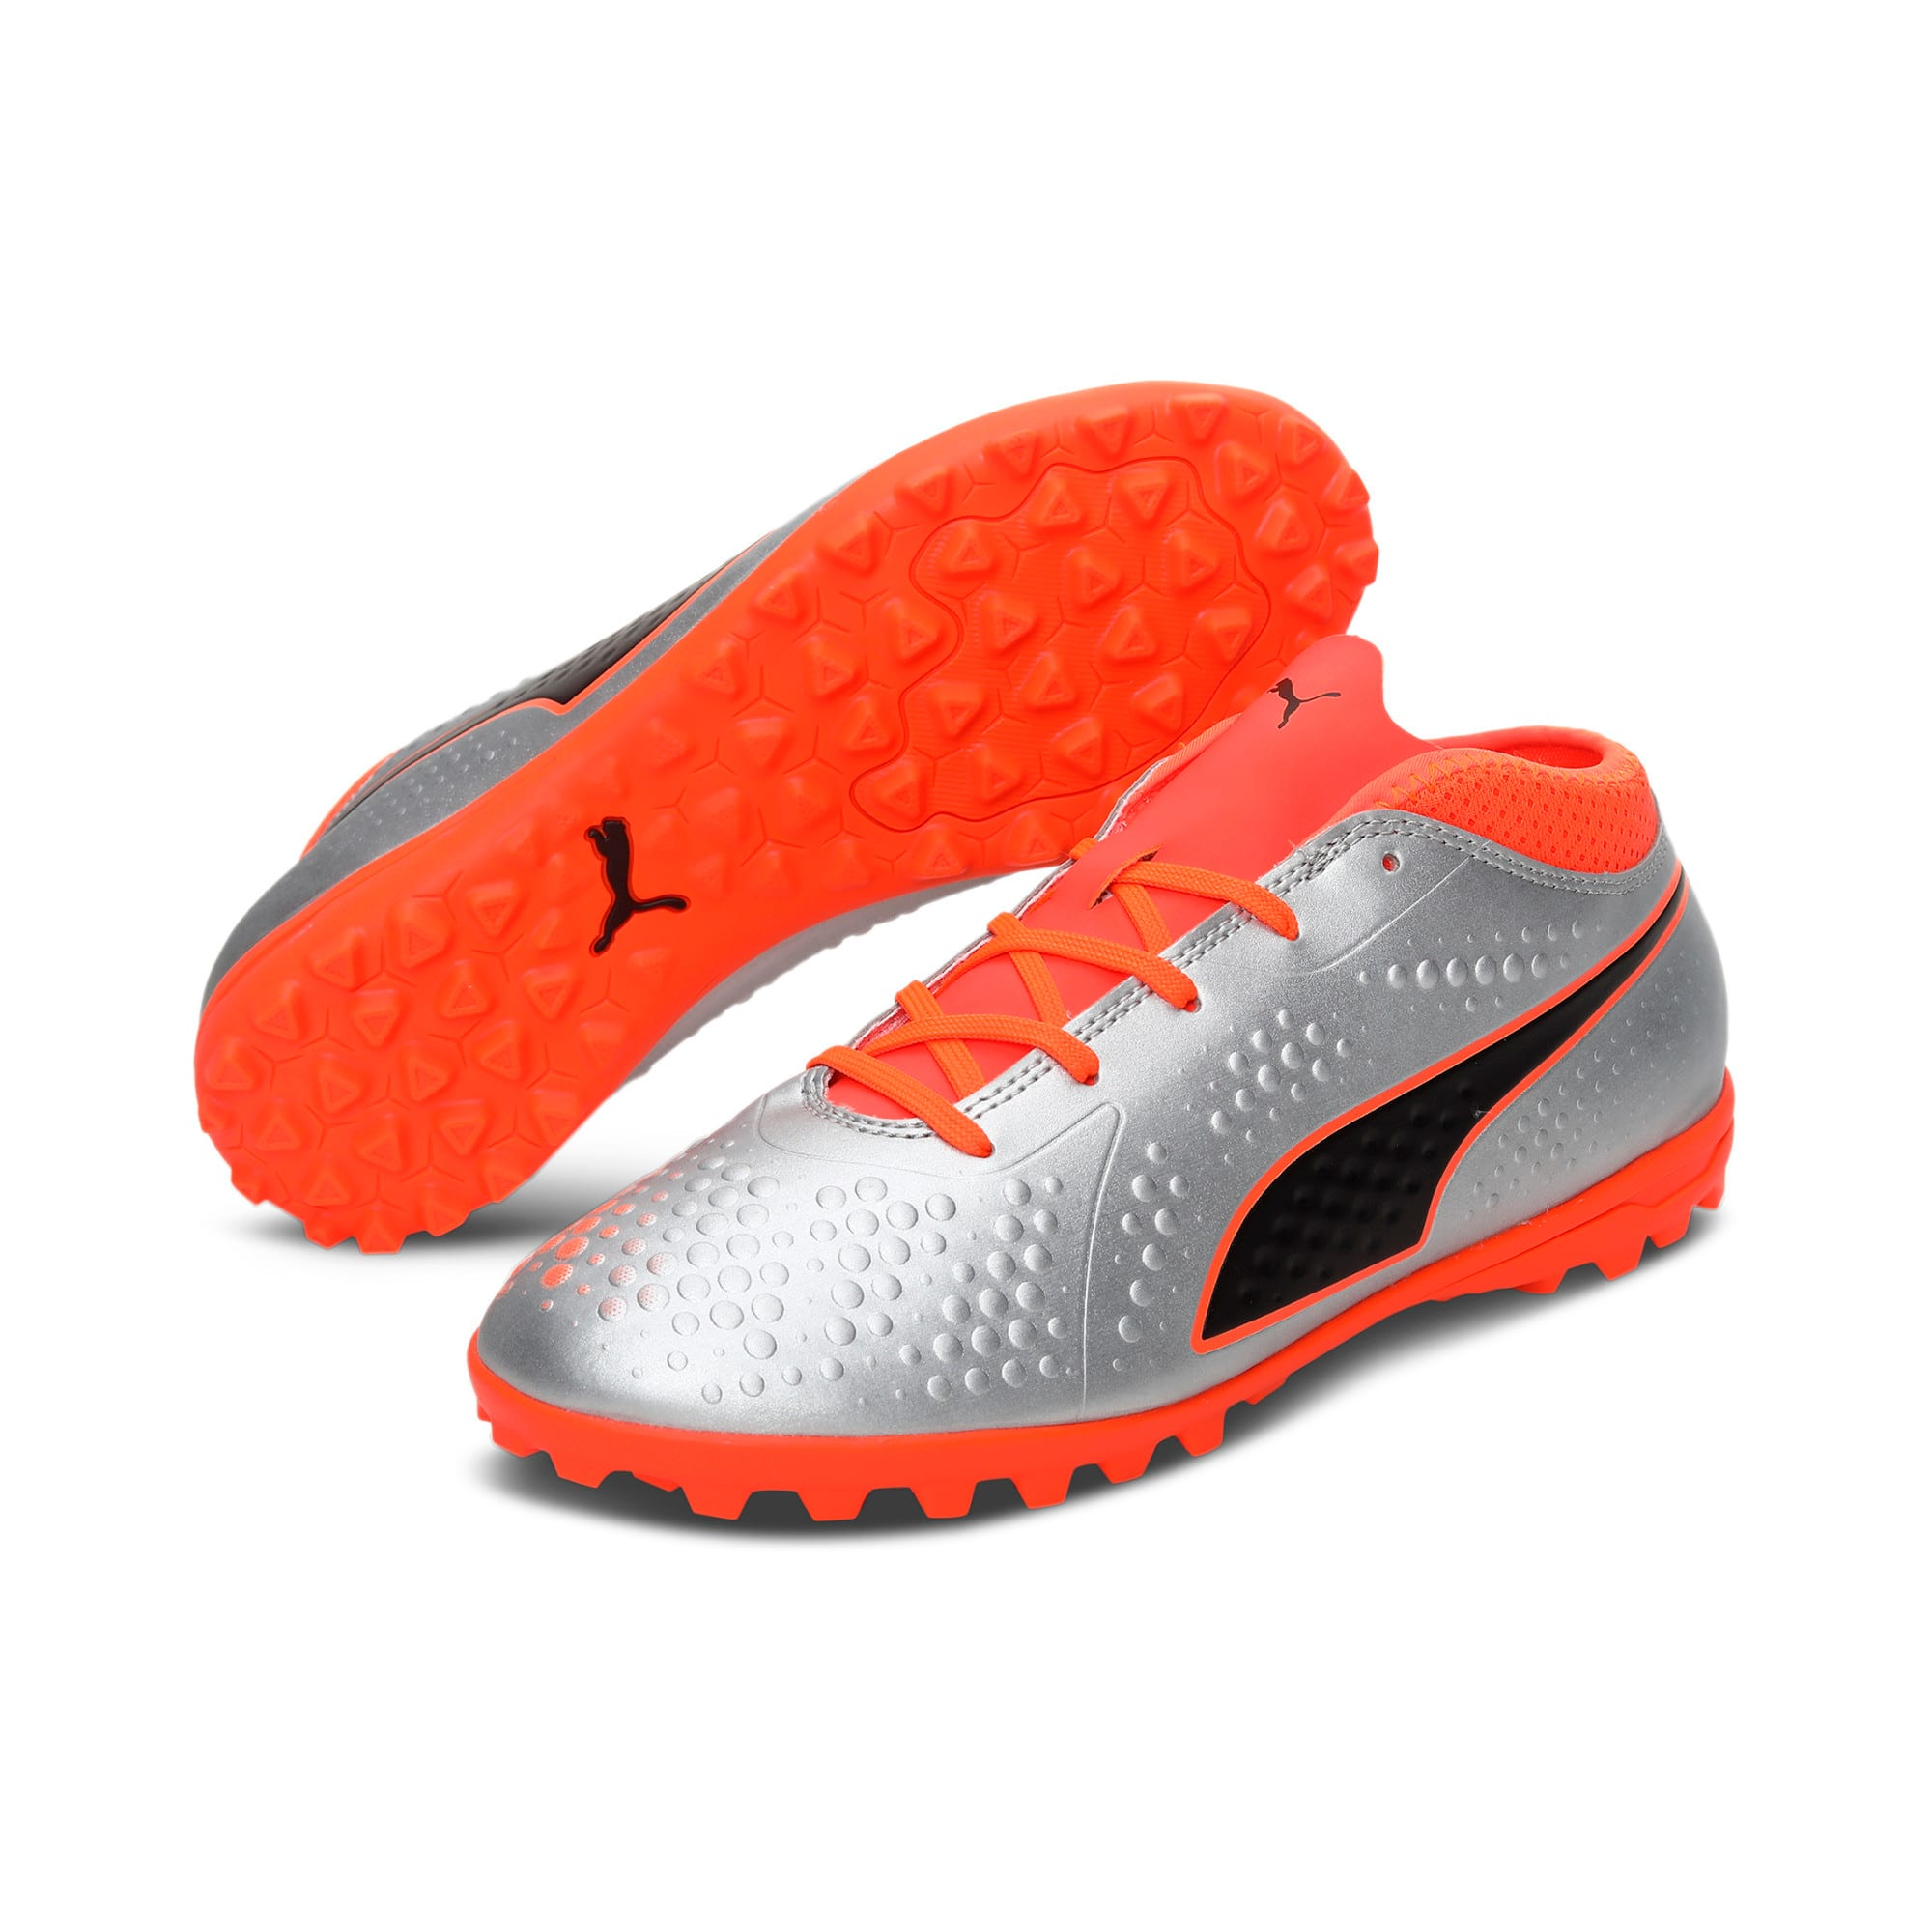 Thumbnail 2 of PUMA ONE 4 Synthetic IT Kid's Football Shoes, Silver-Orange-Black, medium-IND